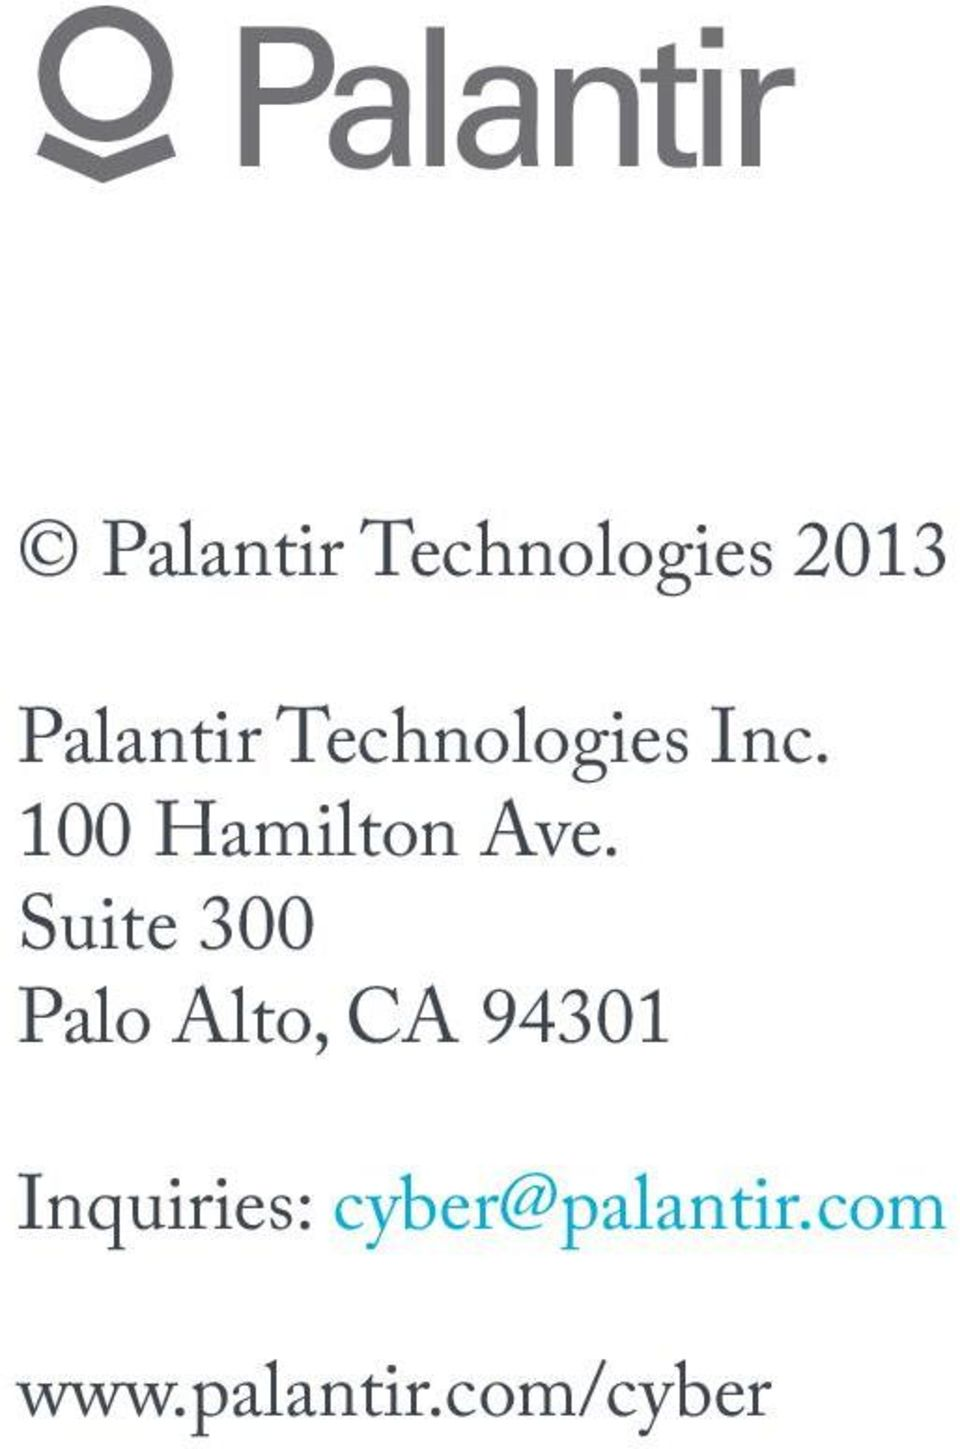 PALANTIR CYBER An End-to-End Cyber Intelligence Platform for